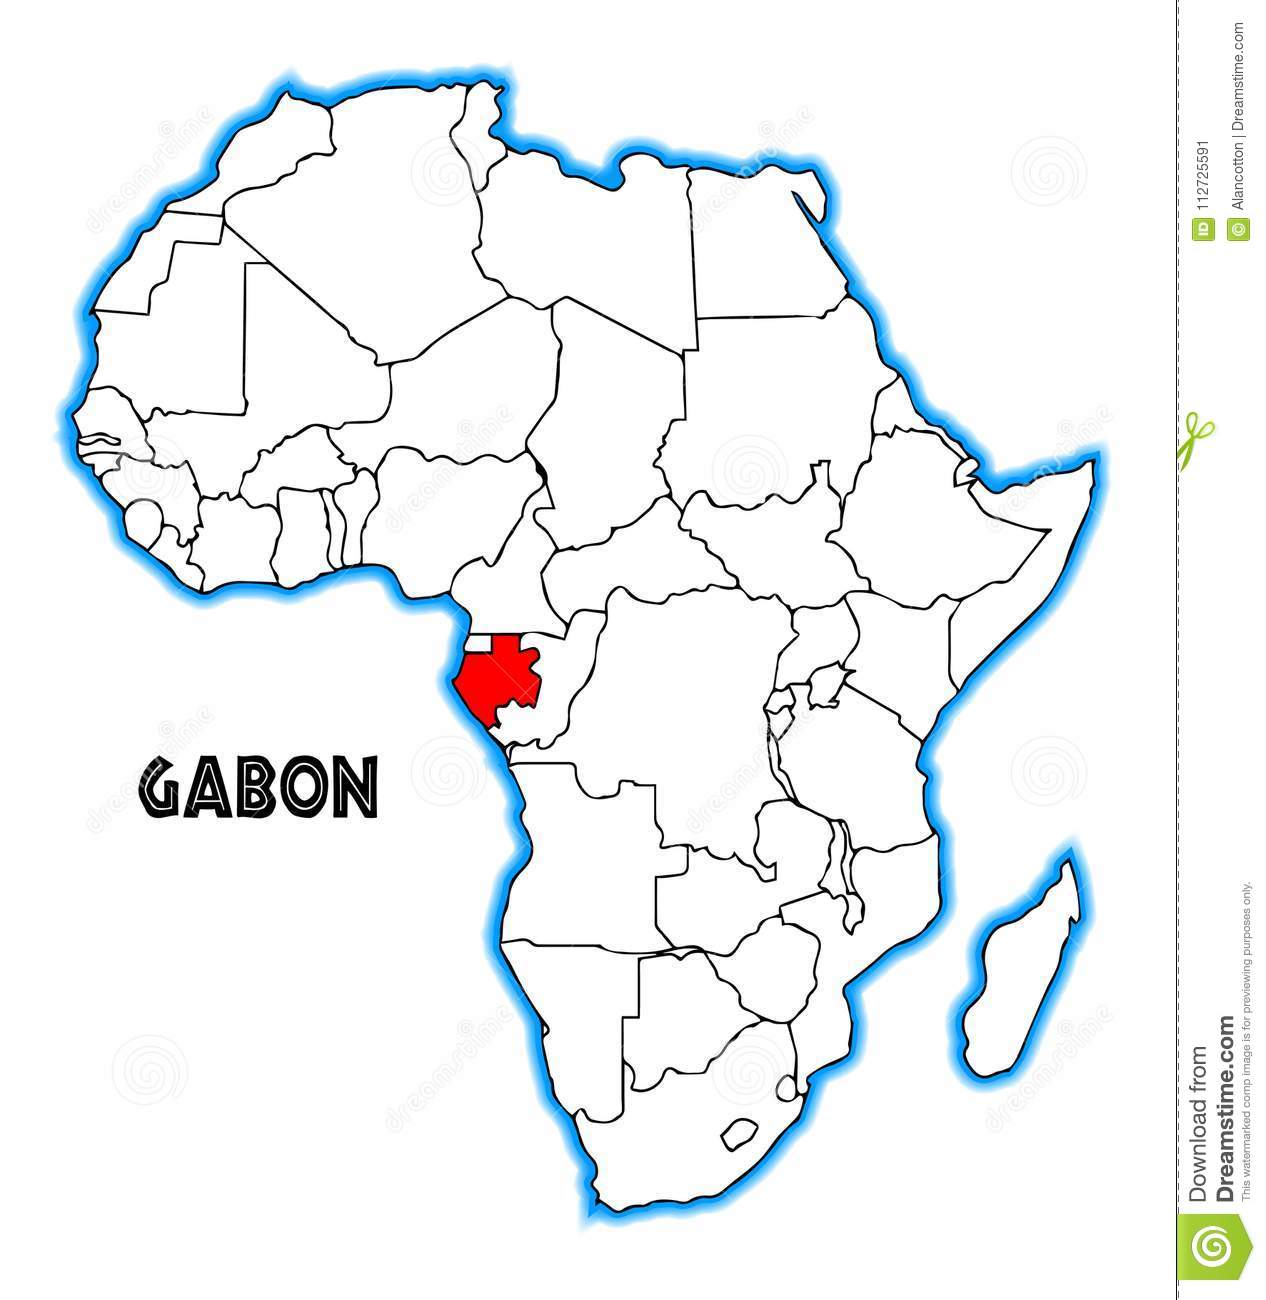 Gabon Africa Map Stock Vector Illustration Of Geography 112725591